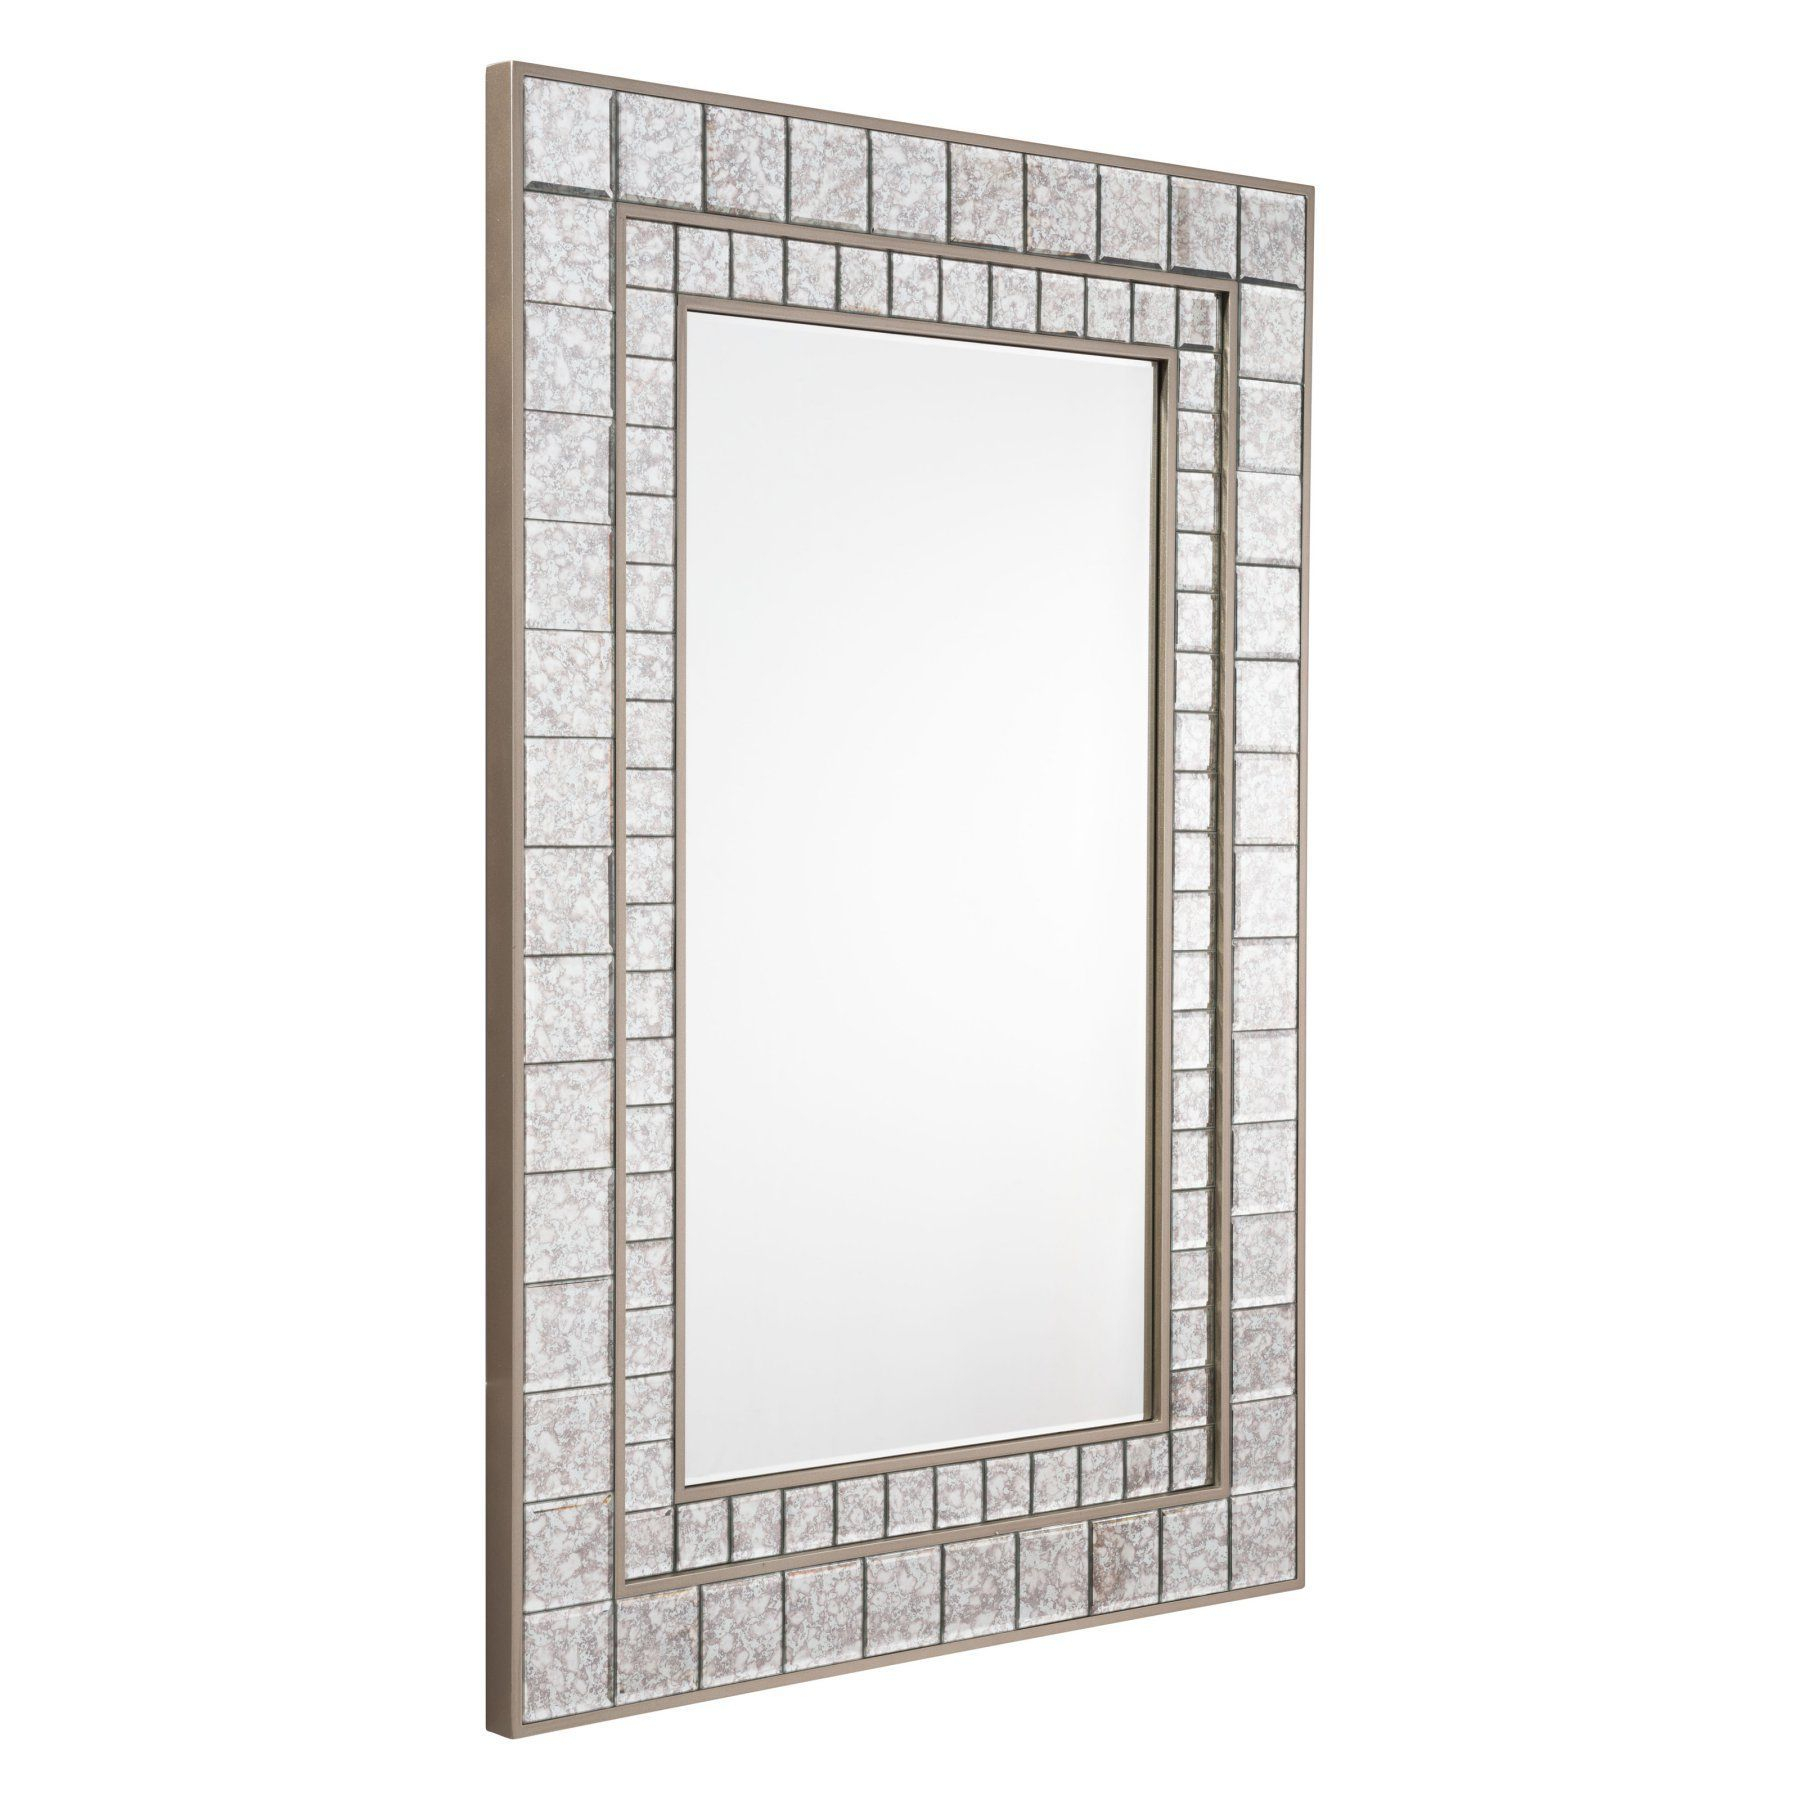 Zuo Modern Contemporary Antique Square Mini Mirror Framed in Pennsburg Rectangle Wall Mirror (Image 30 of 30)